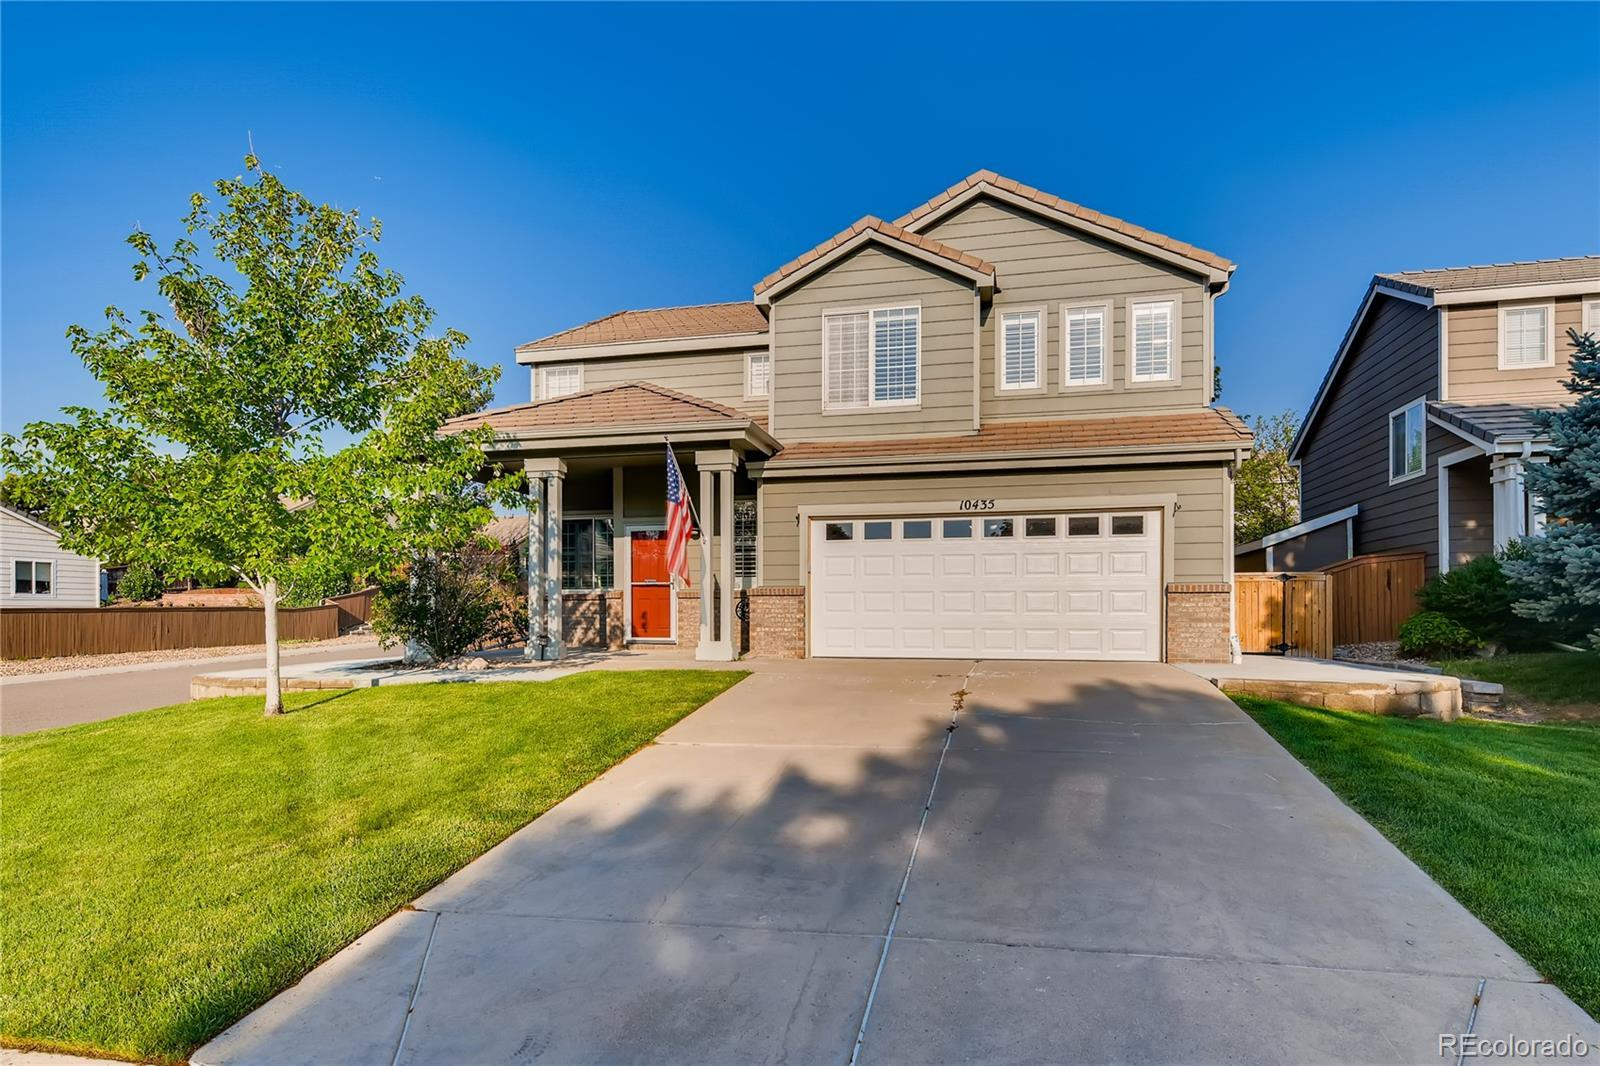 10435 Tracewood Drive, Highlands Ranch, CO 80130 - #: 8421339